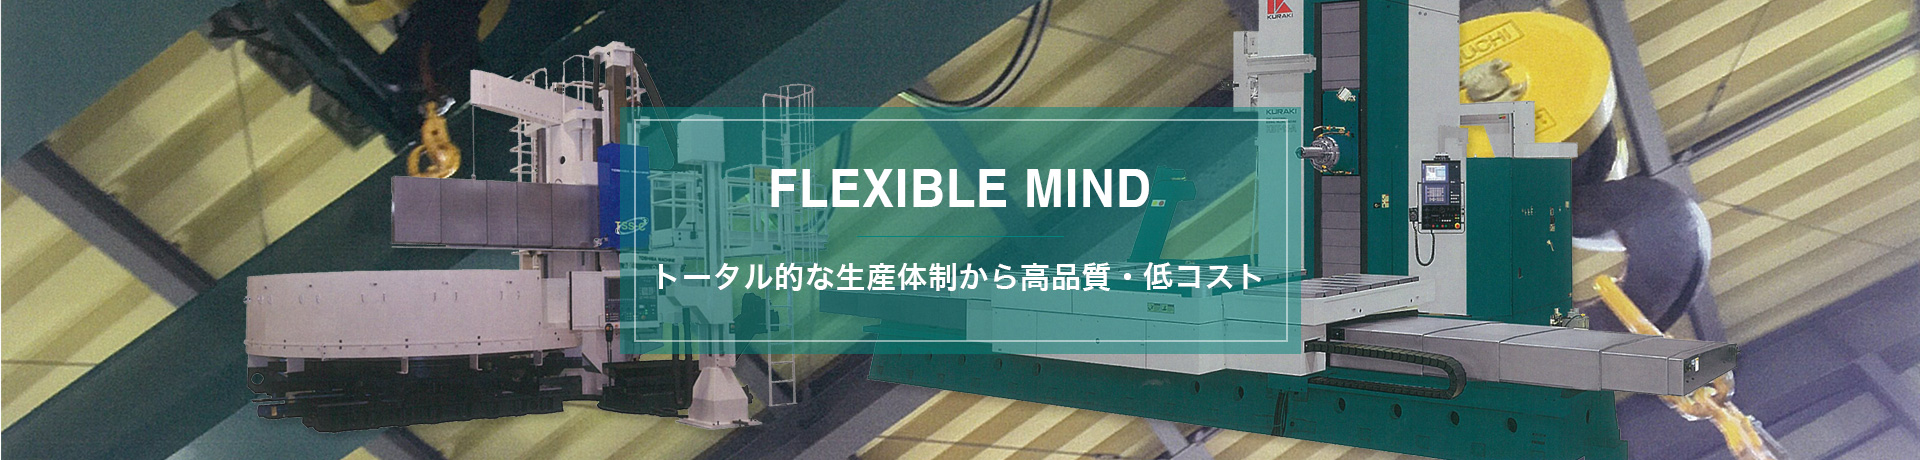 FLEXIBLE MIND